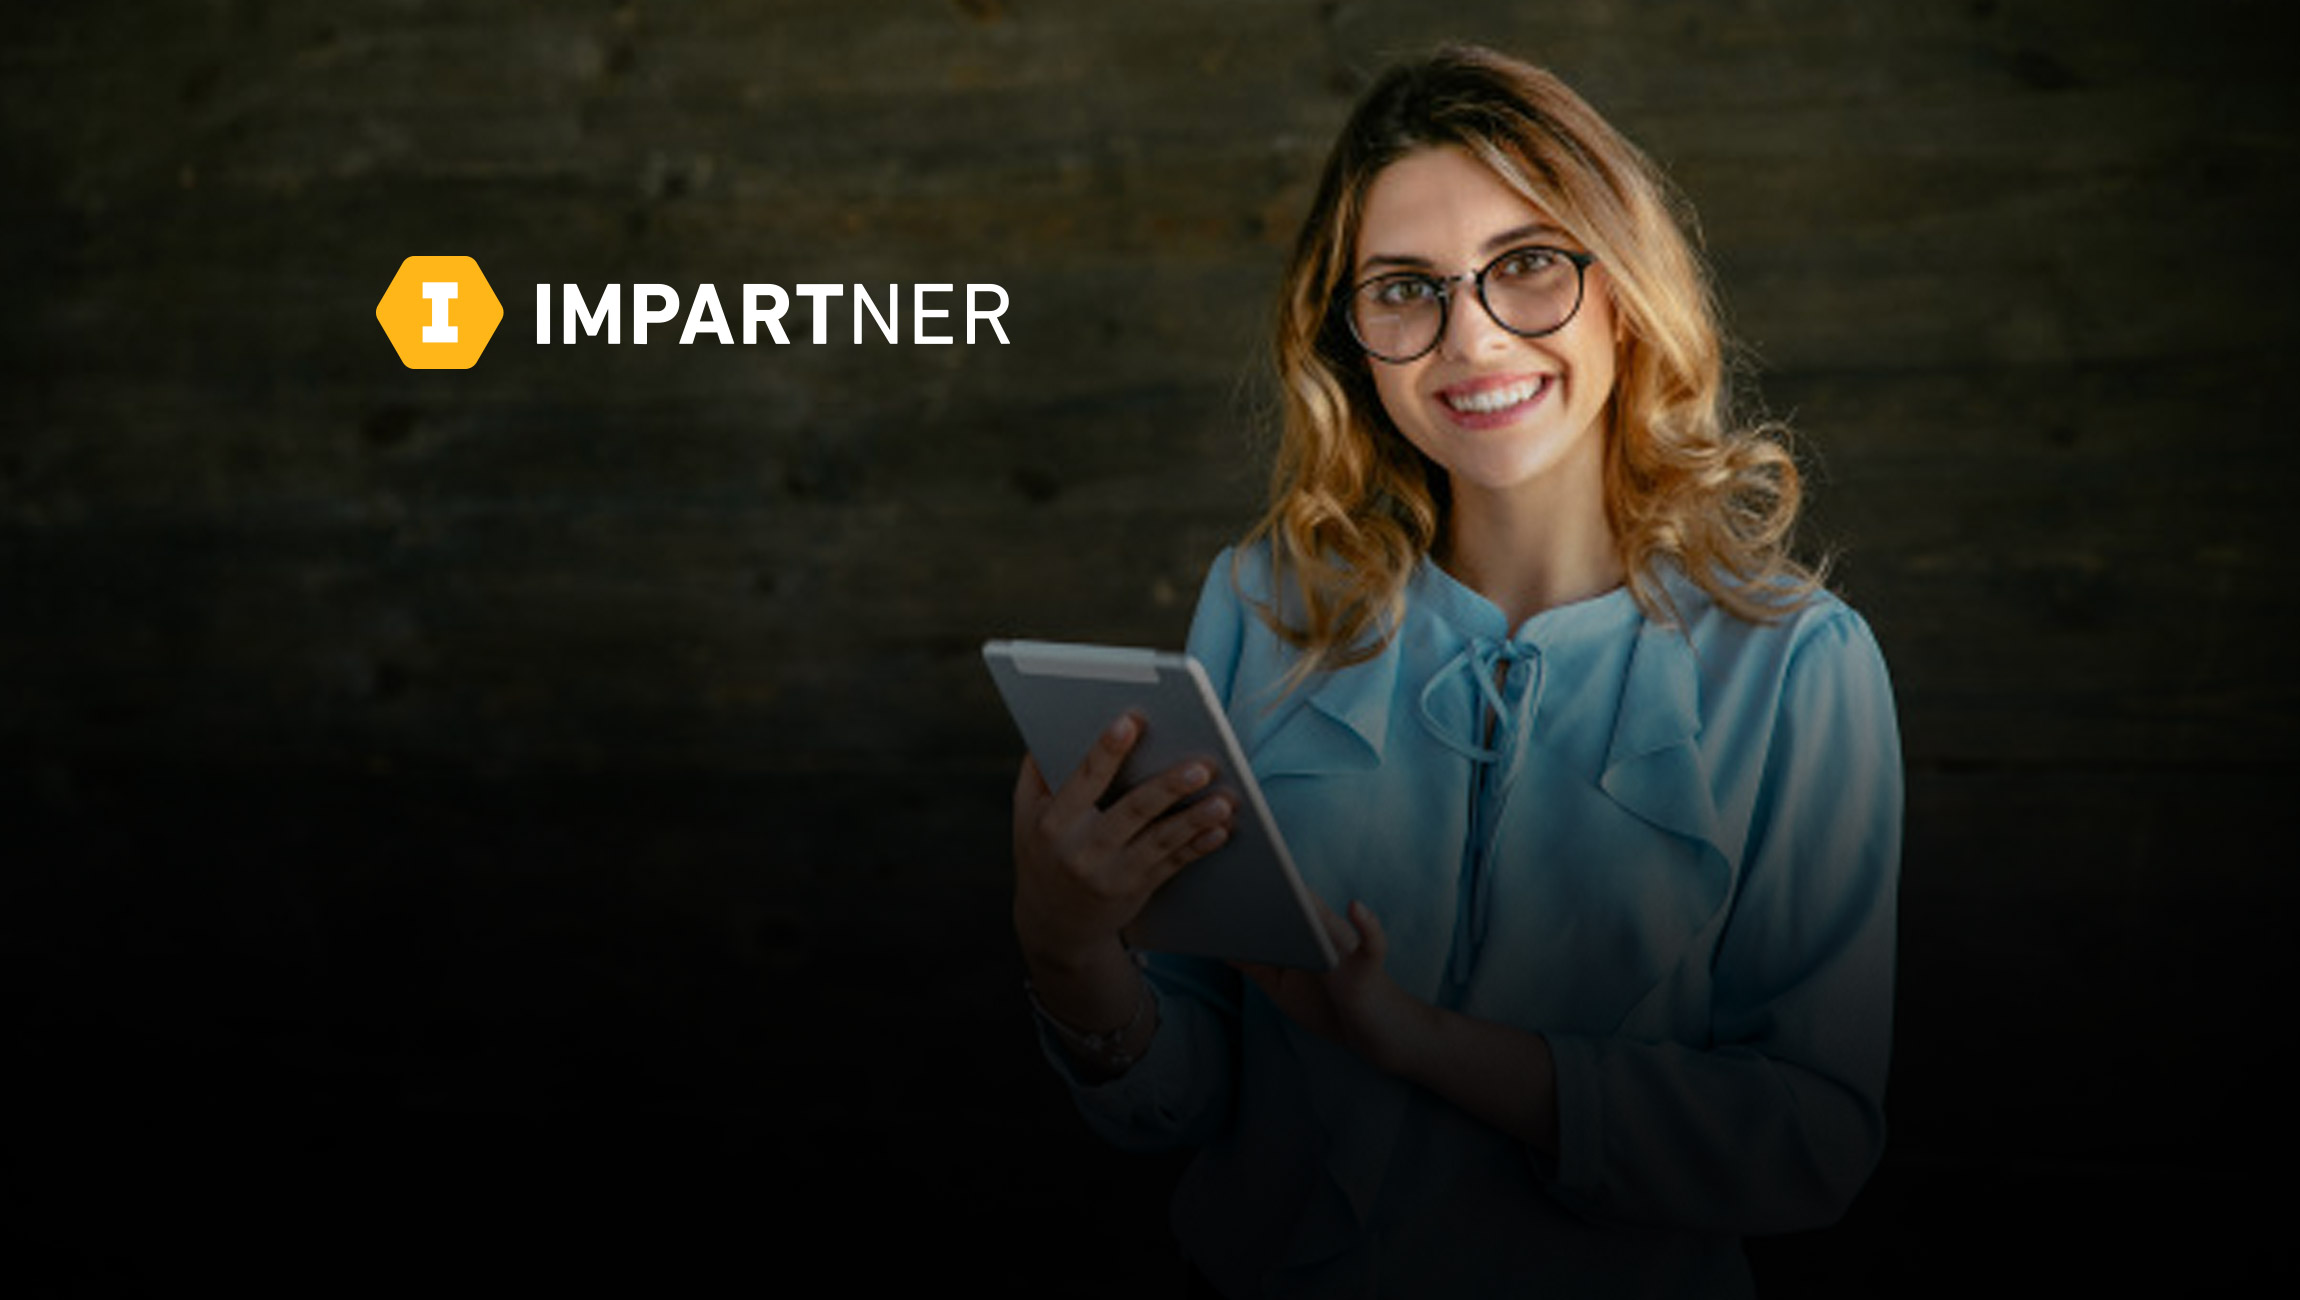 Impartner Announces New Chief Financial Officer and VP of Customer Success to Capitalize on Explosive Growth in Channel Management Technology